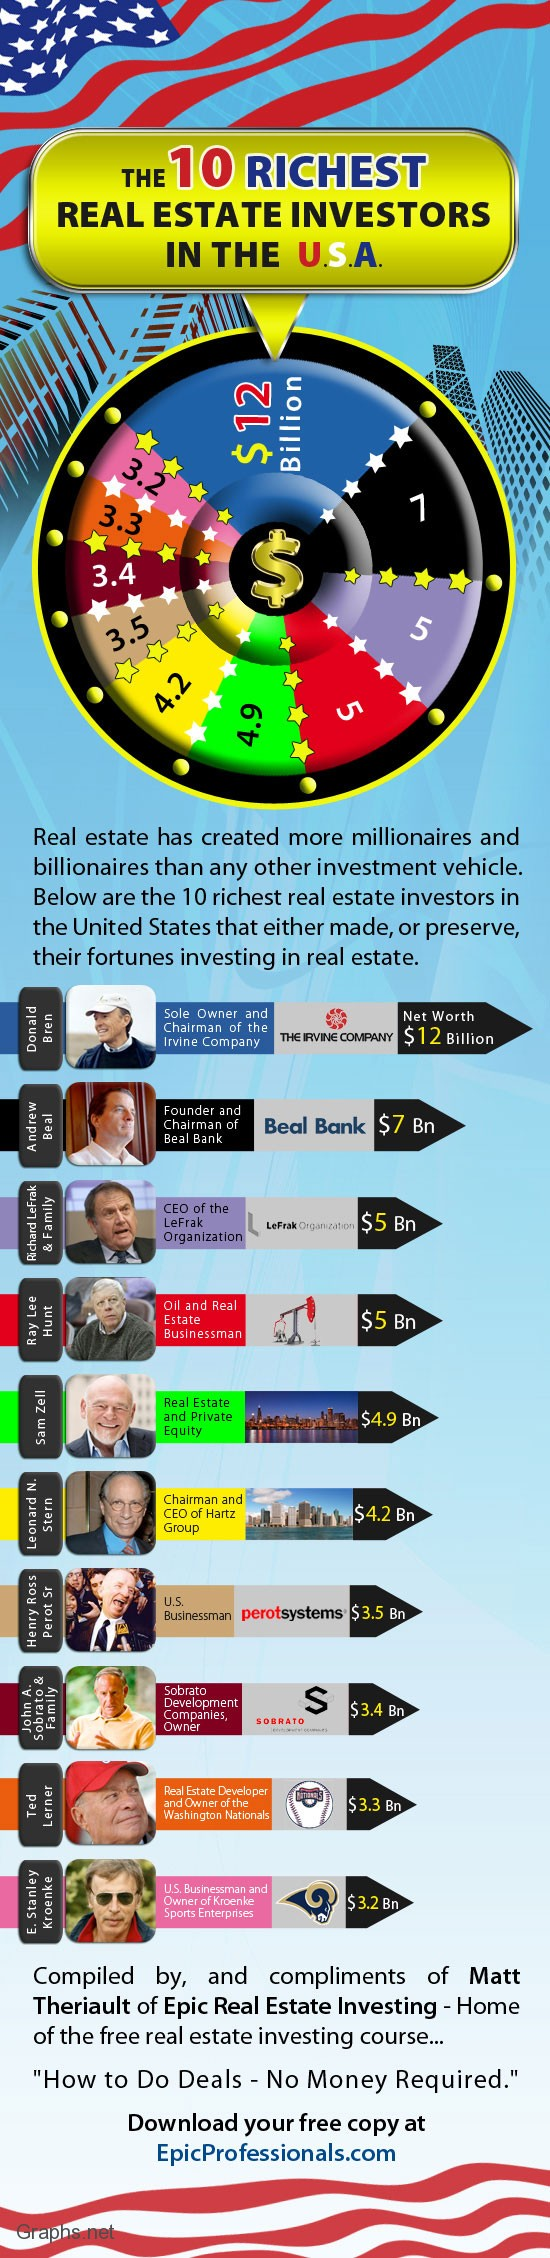 Top 10 Richest Real Estate Investors in US